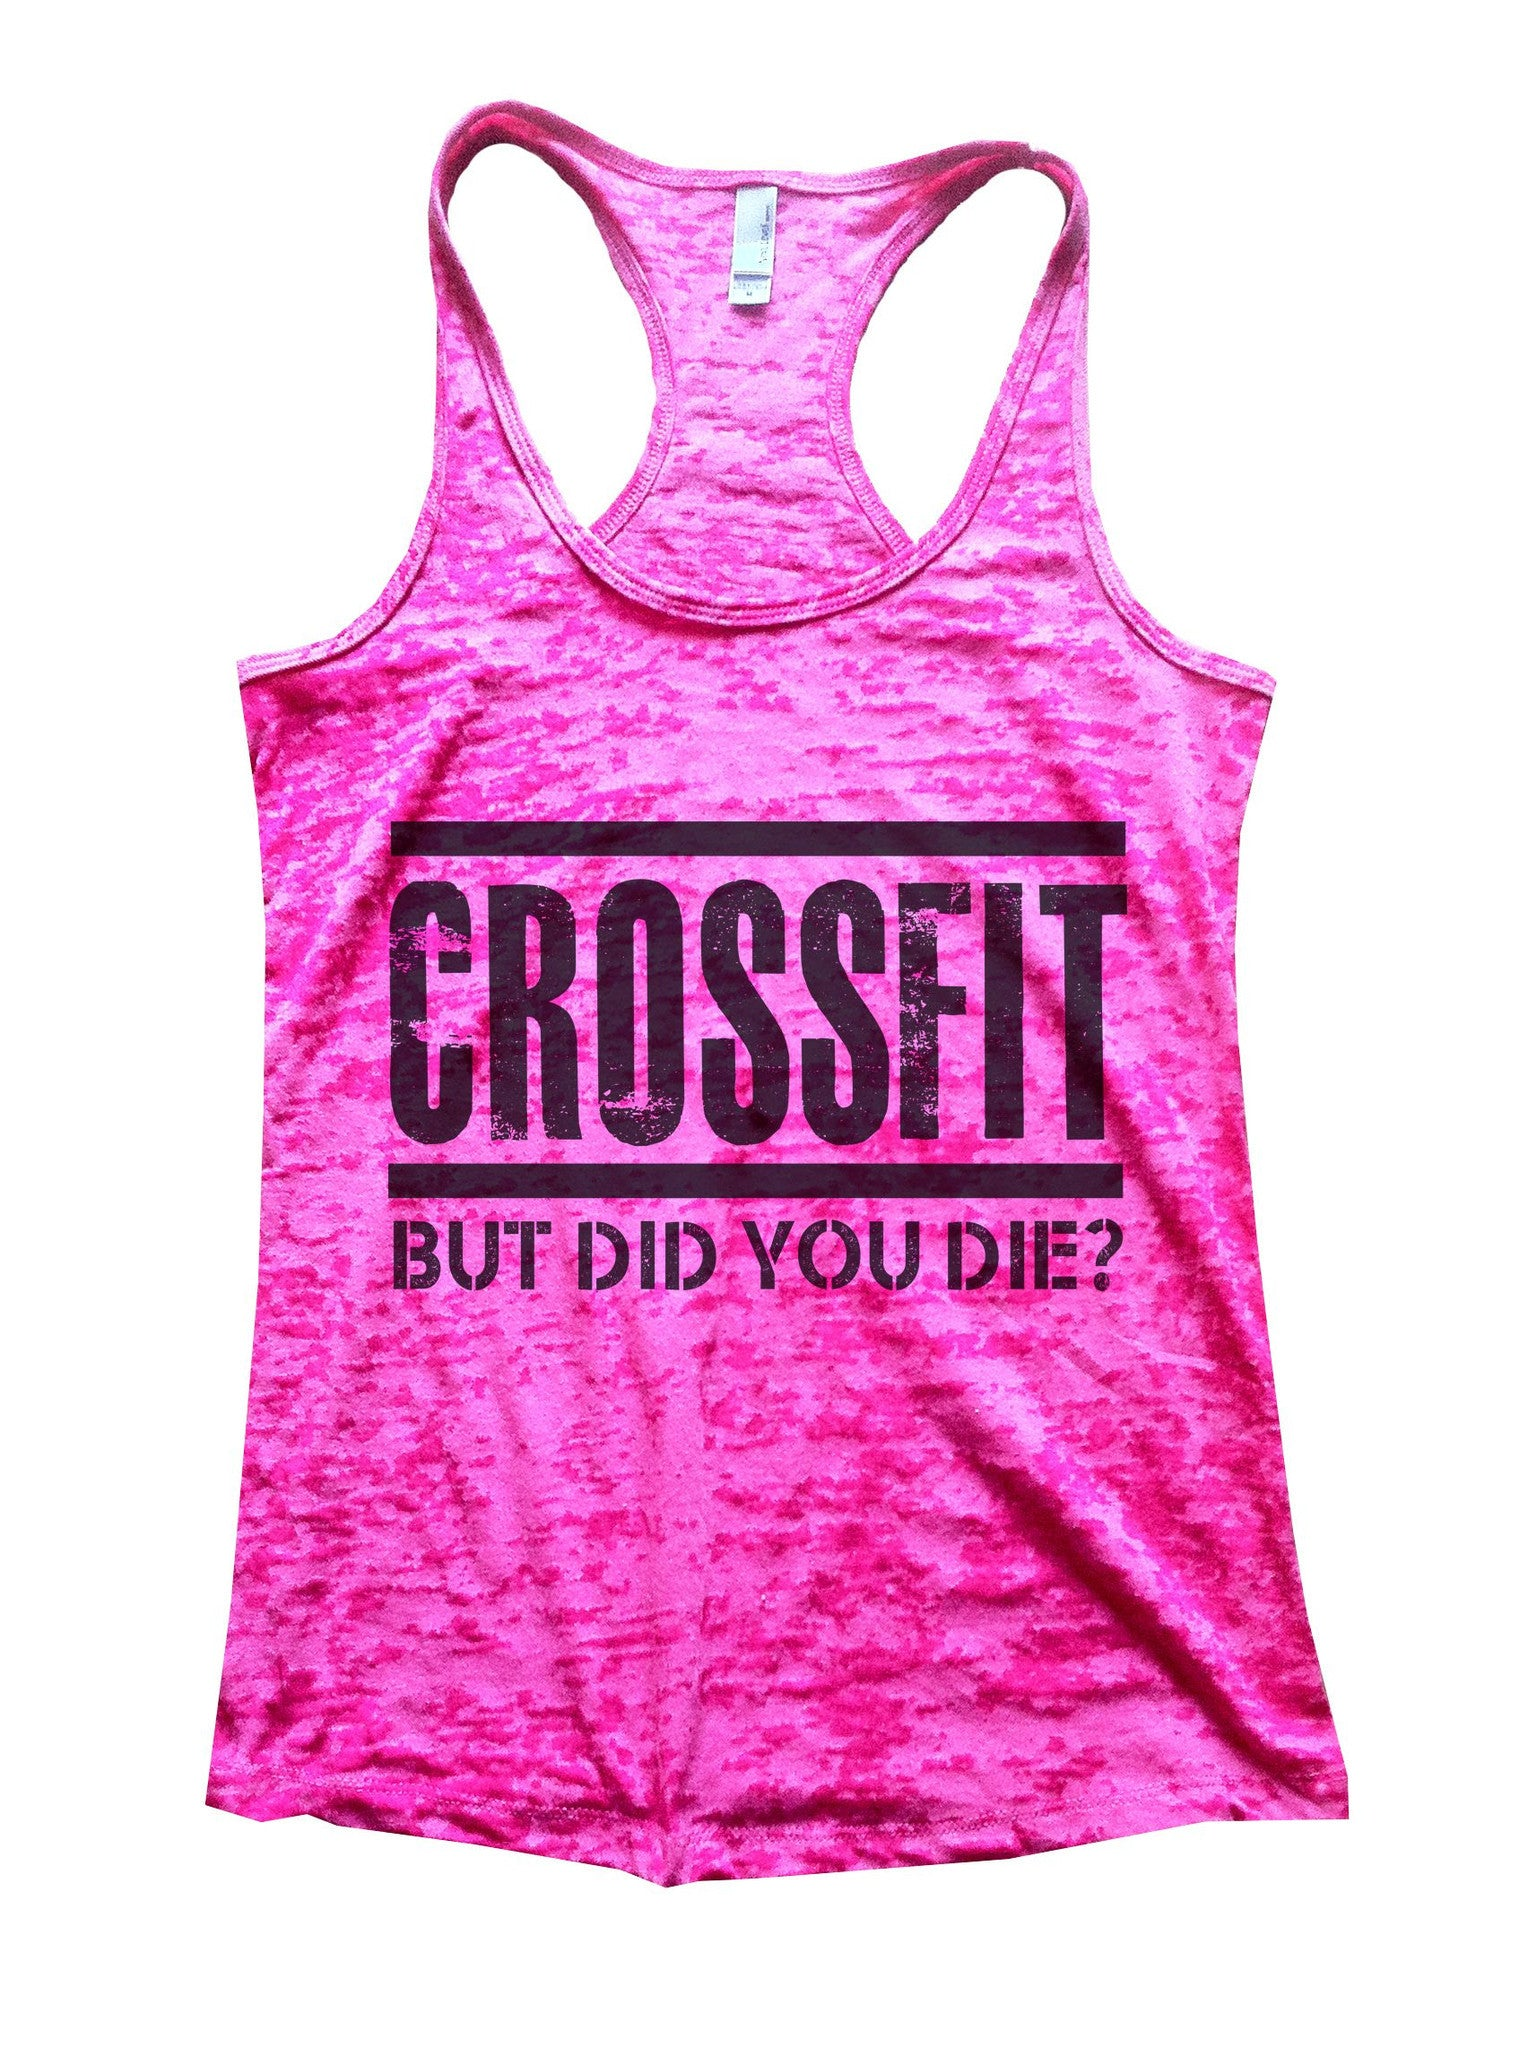 Crossfit But Did You Die Burnout Tank Top By BurnoutTankTops.com - 648 - Funny Shirts Tank Tops Burnouts and Triblends  - 6